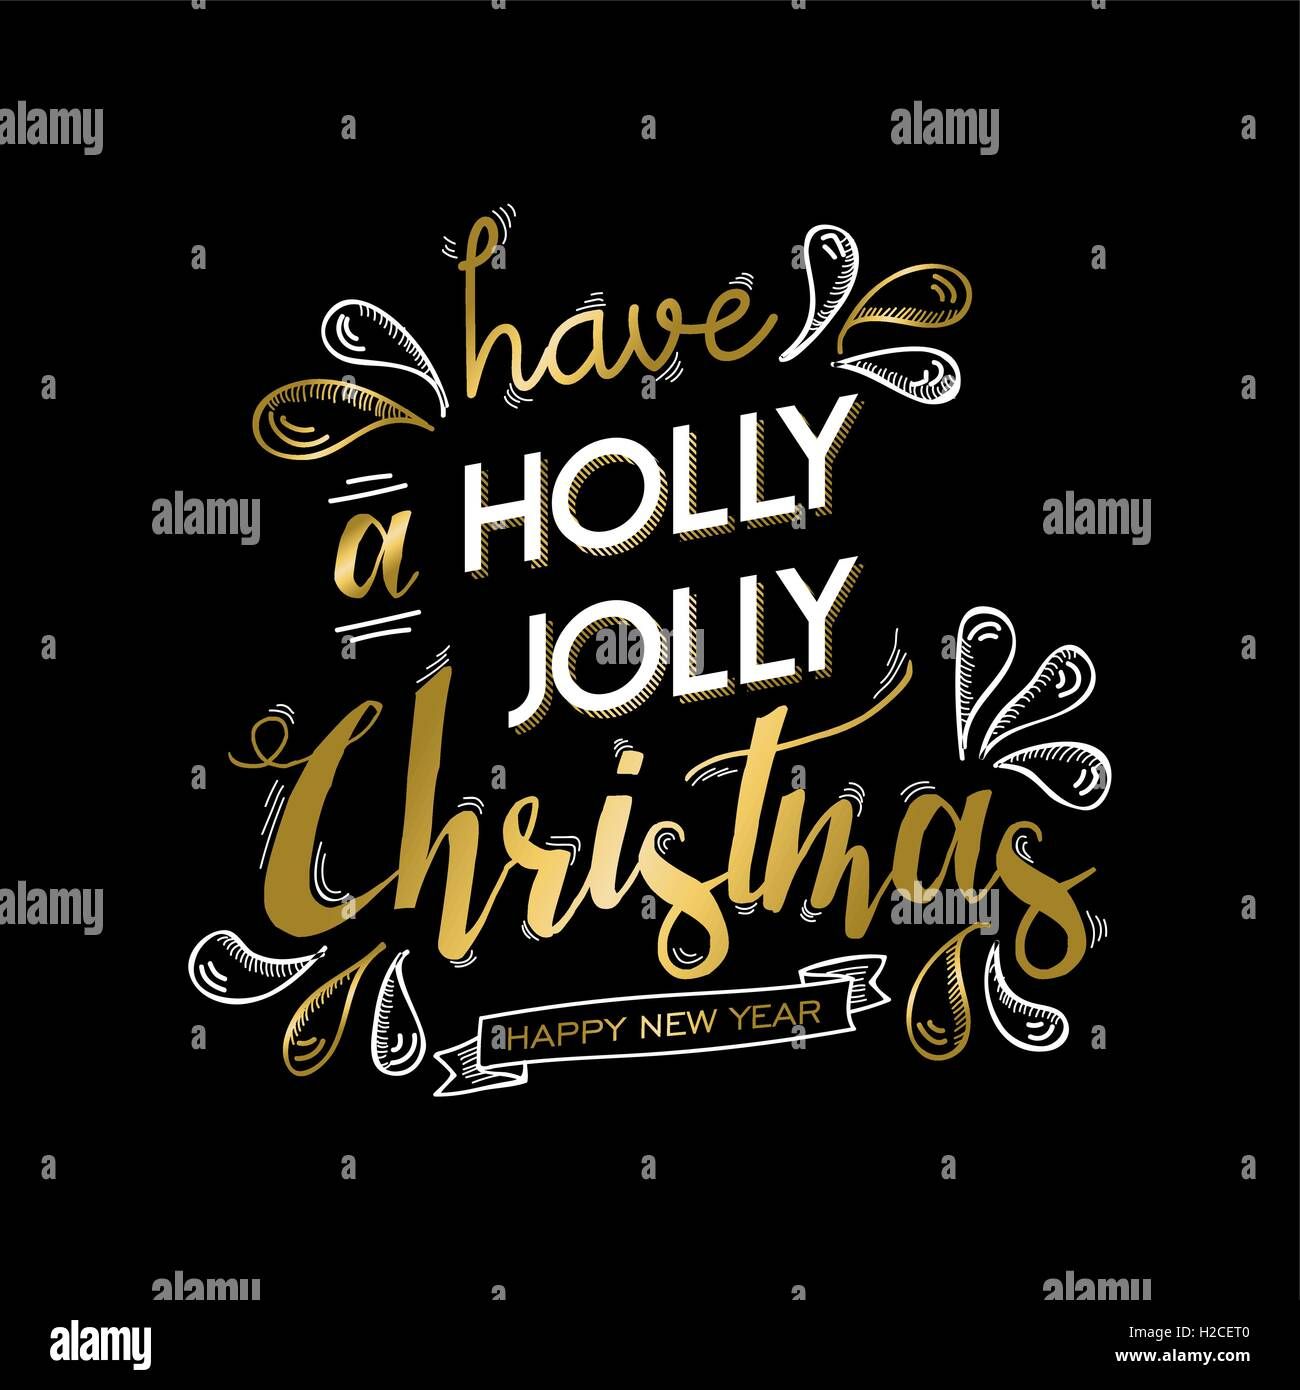 Merry christmas and happy new year gold lettering design. Xmas text quote with doodle drawings for holiday greeting - Stock Image